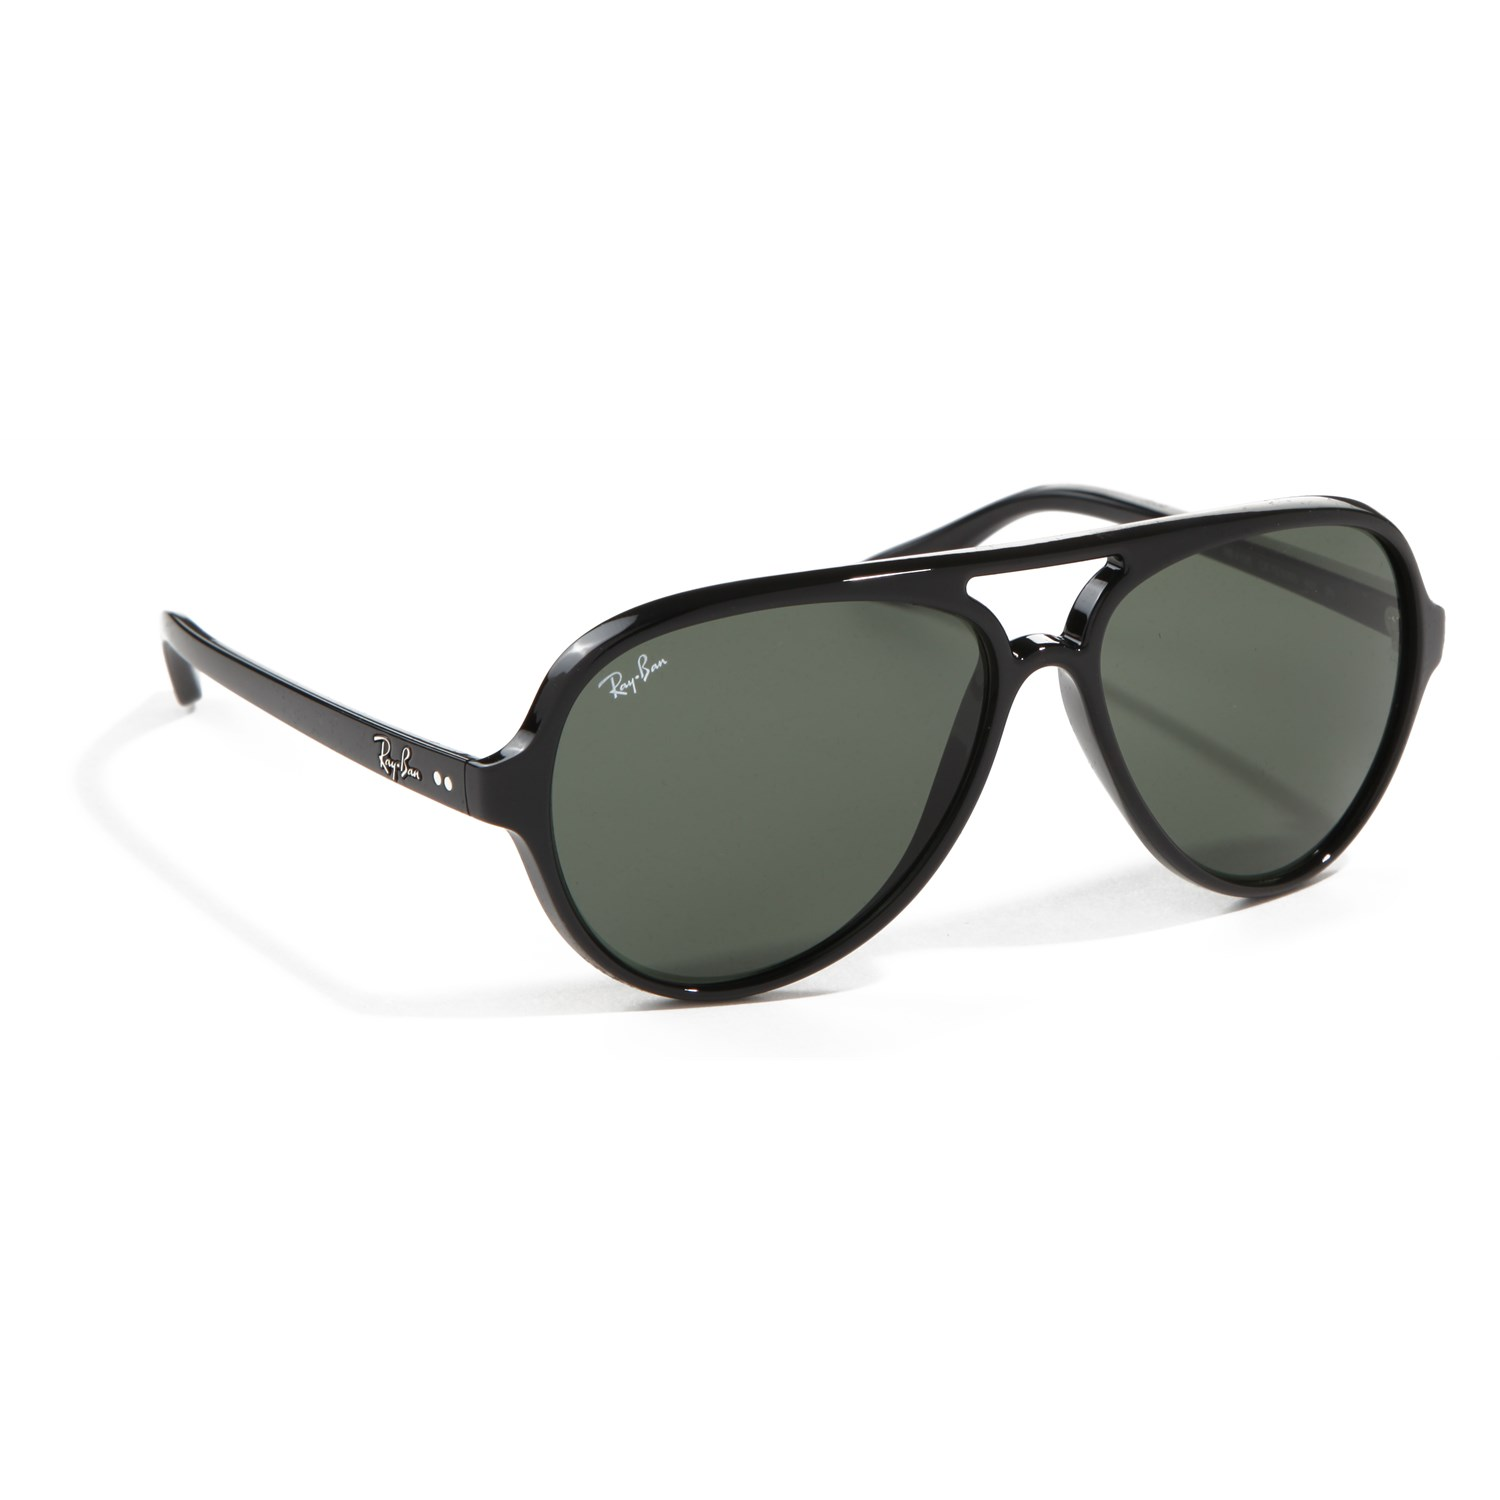 ray ban aviator sunglasses dimensions outlet. Black Bedroom Furniture Sets. Home Design Ideas